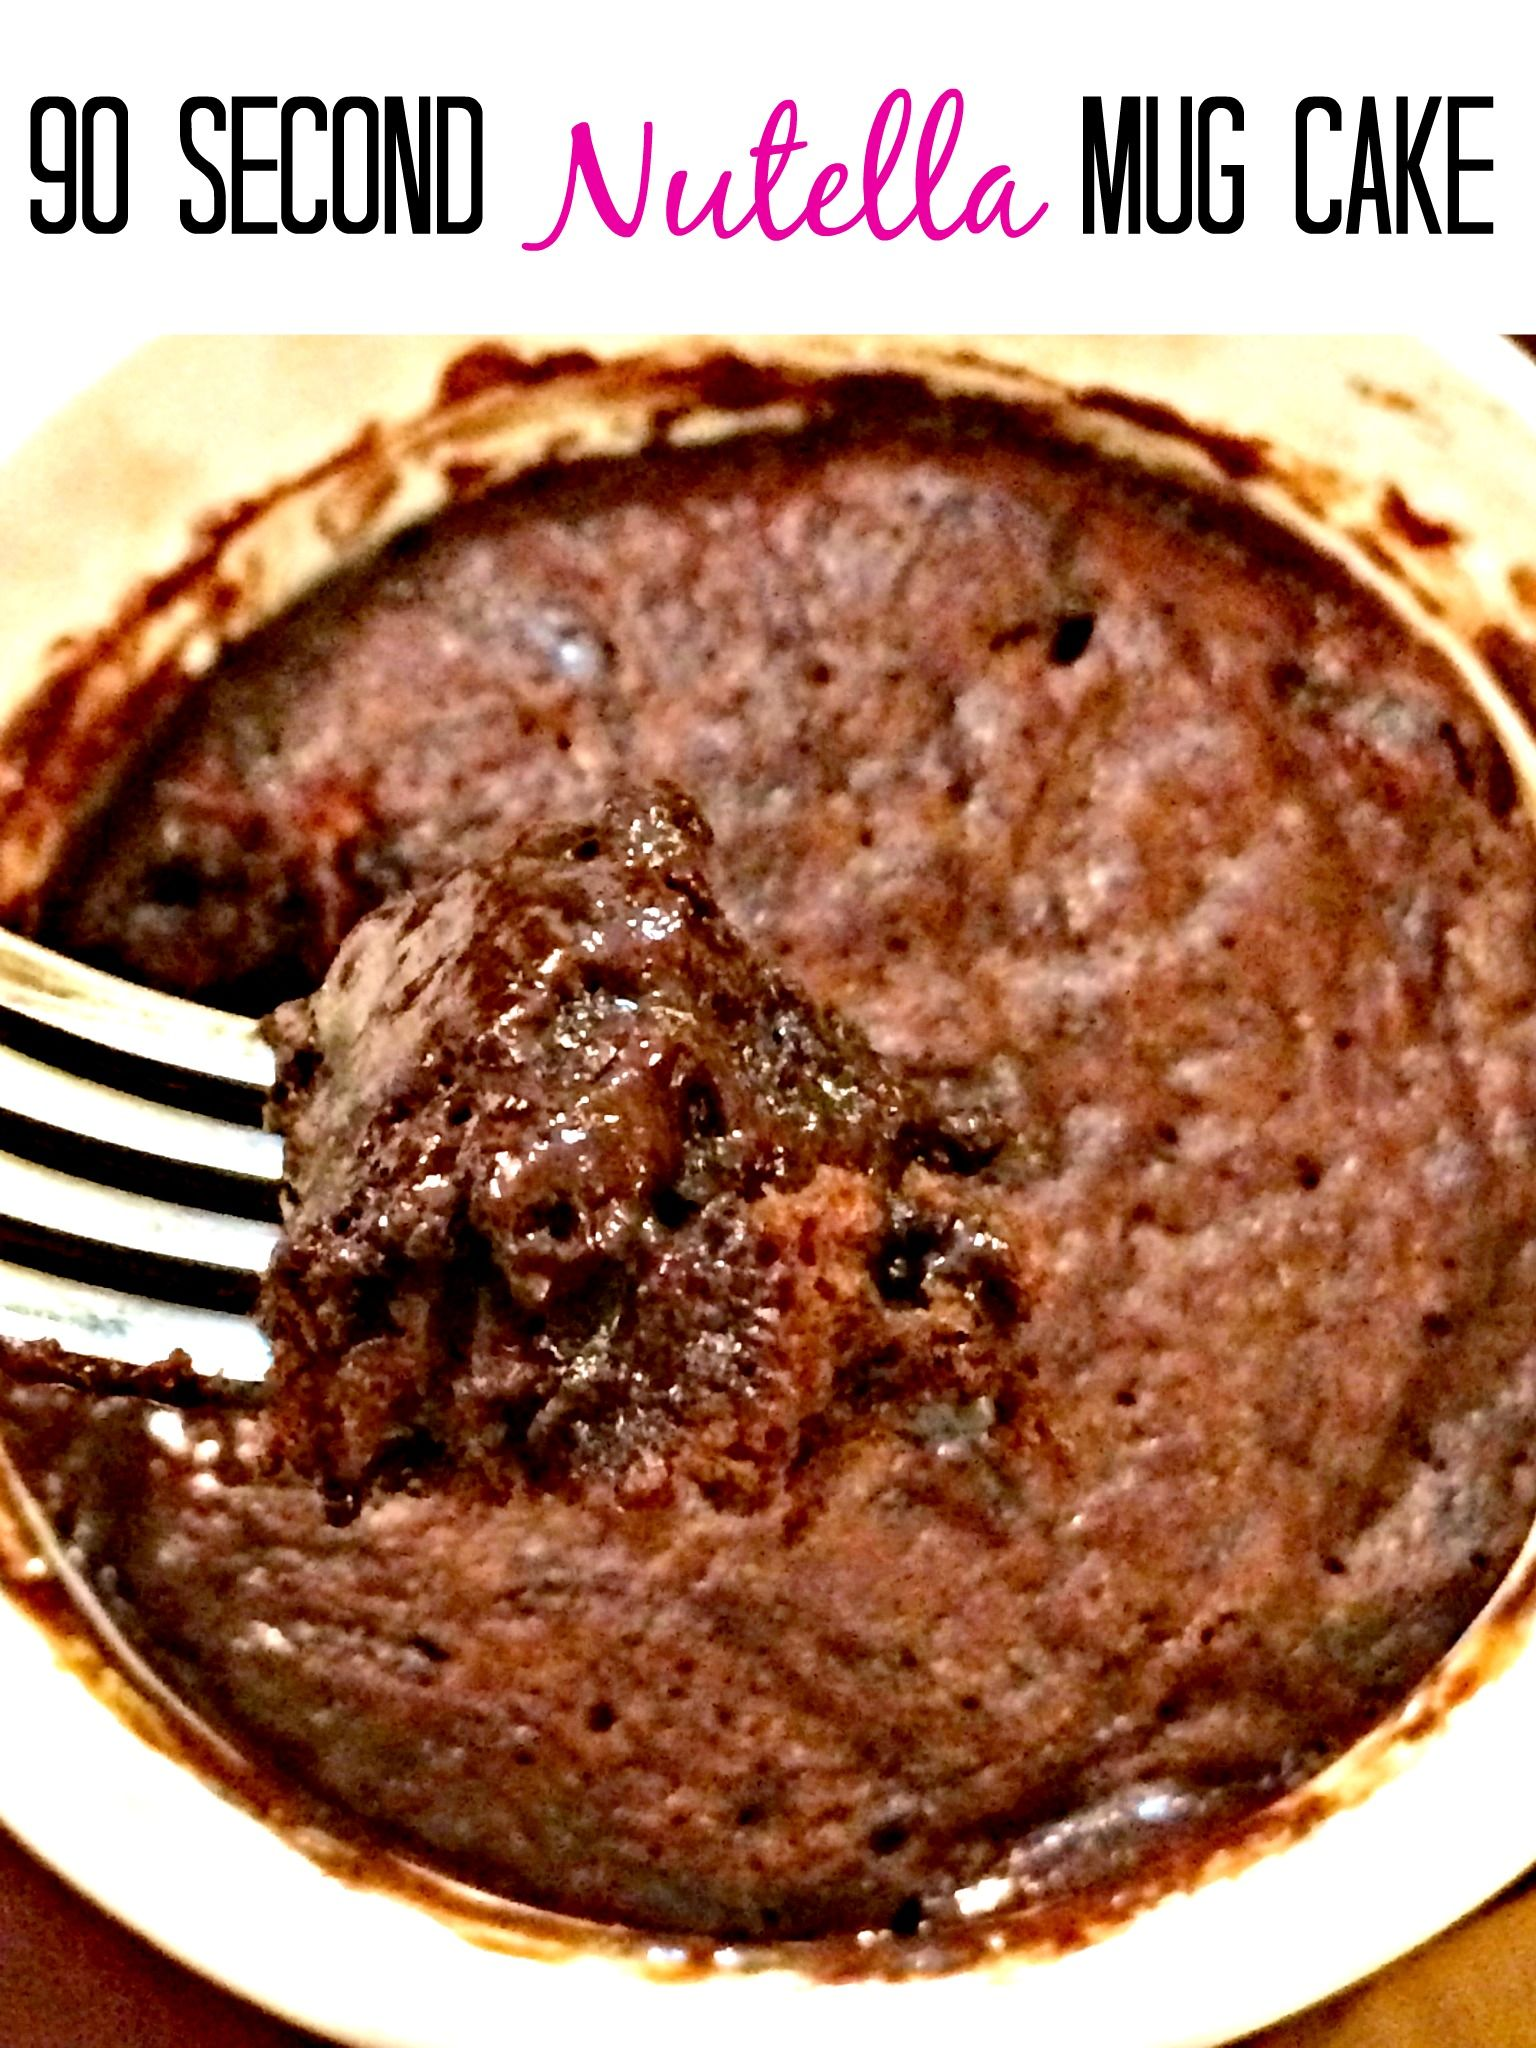 Ooey gooey Nutella mug cake microwaved and done in 90 seconds.  OMG.